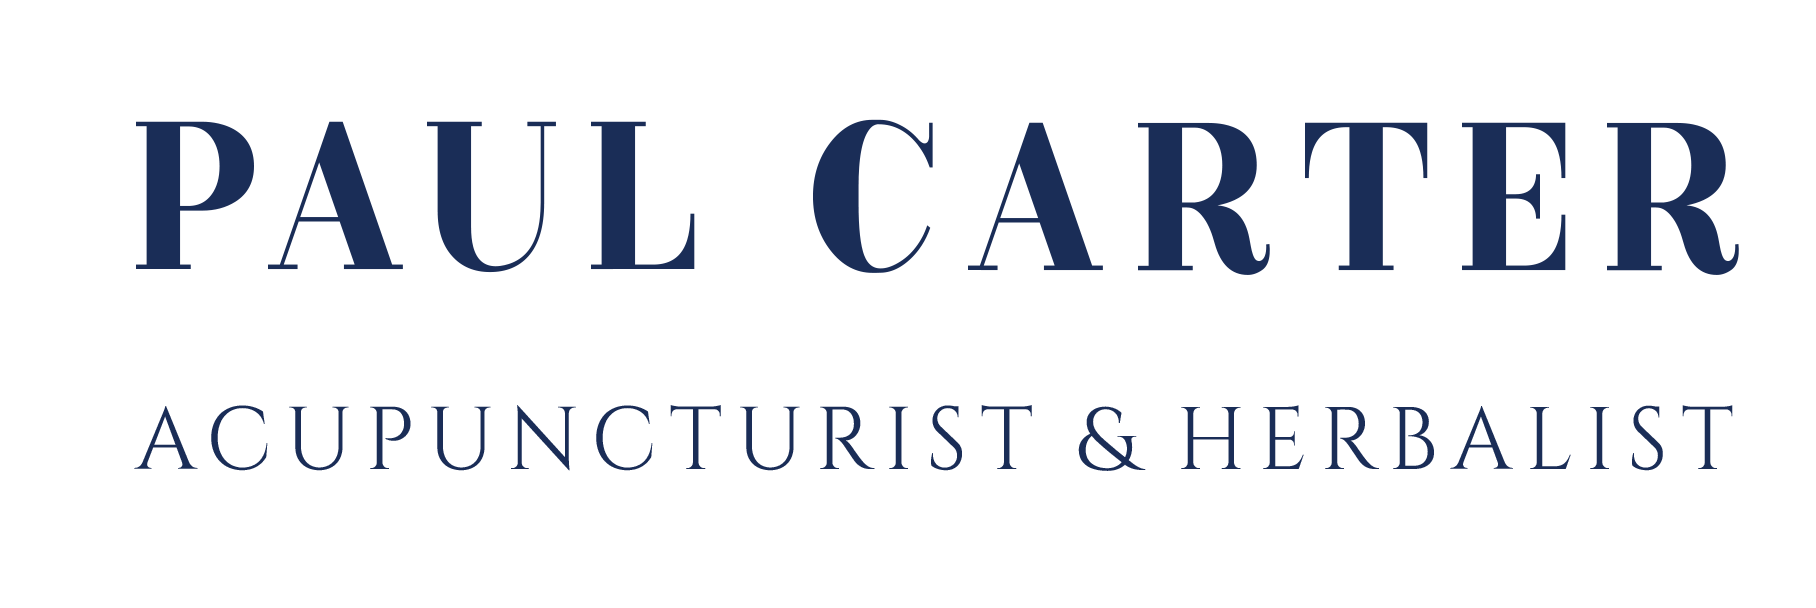 Paul Carter, Acupuncturist & Herbalist